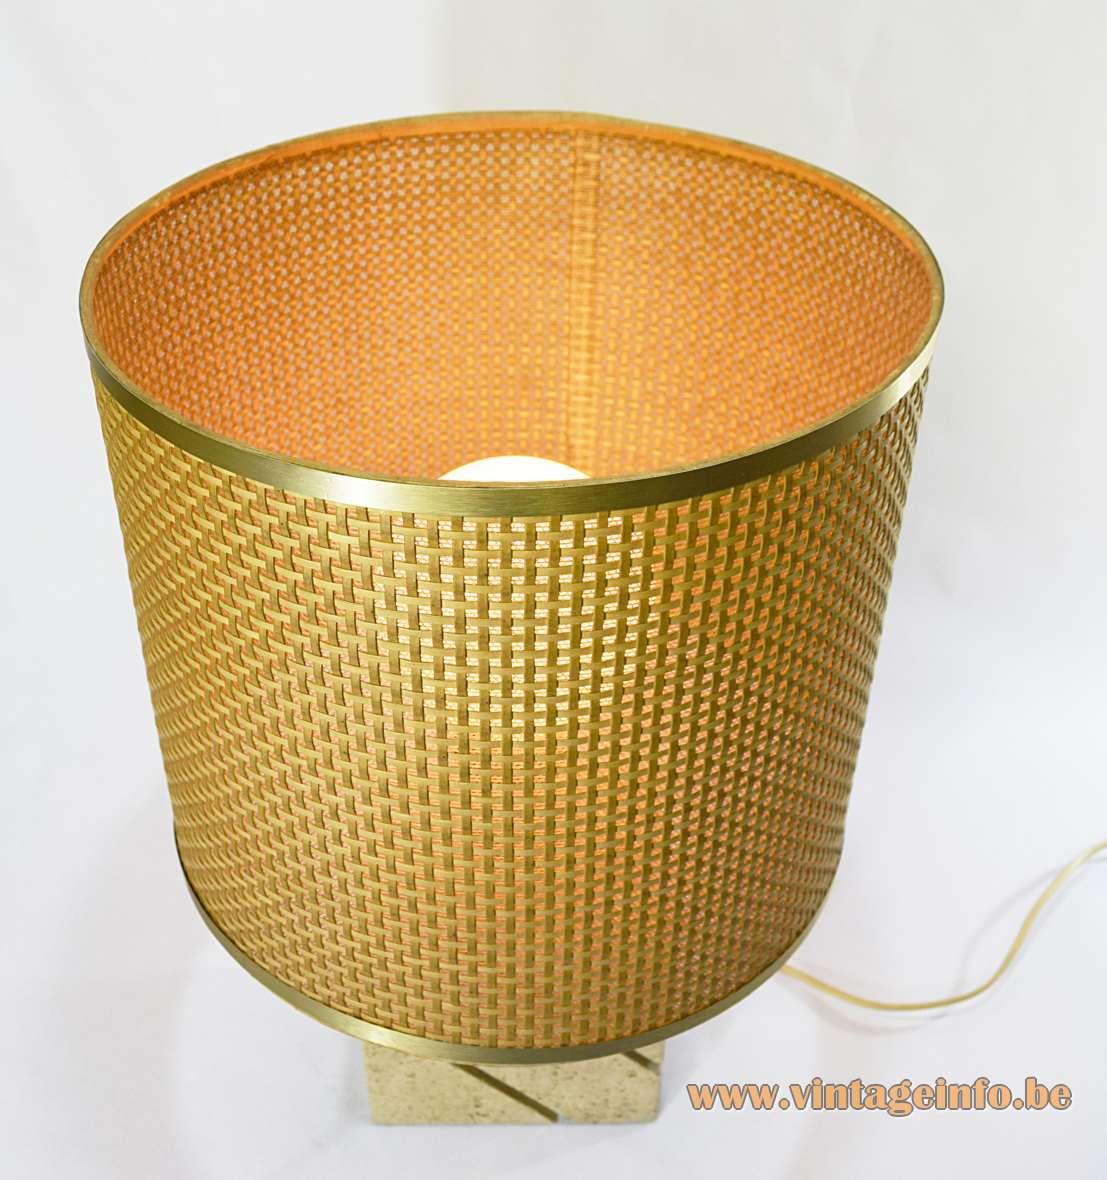 Fratelli Mannelli Travertine Table Lamp limestone base 1970s 1980s Cane Reed wicker round lampshade